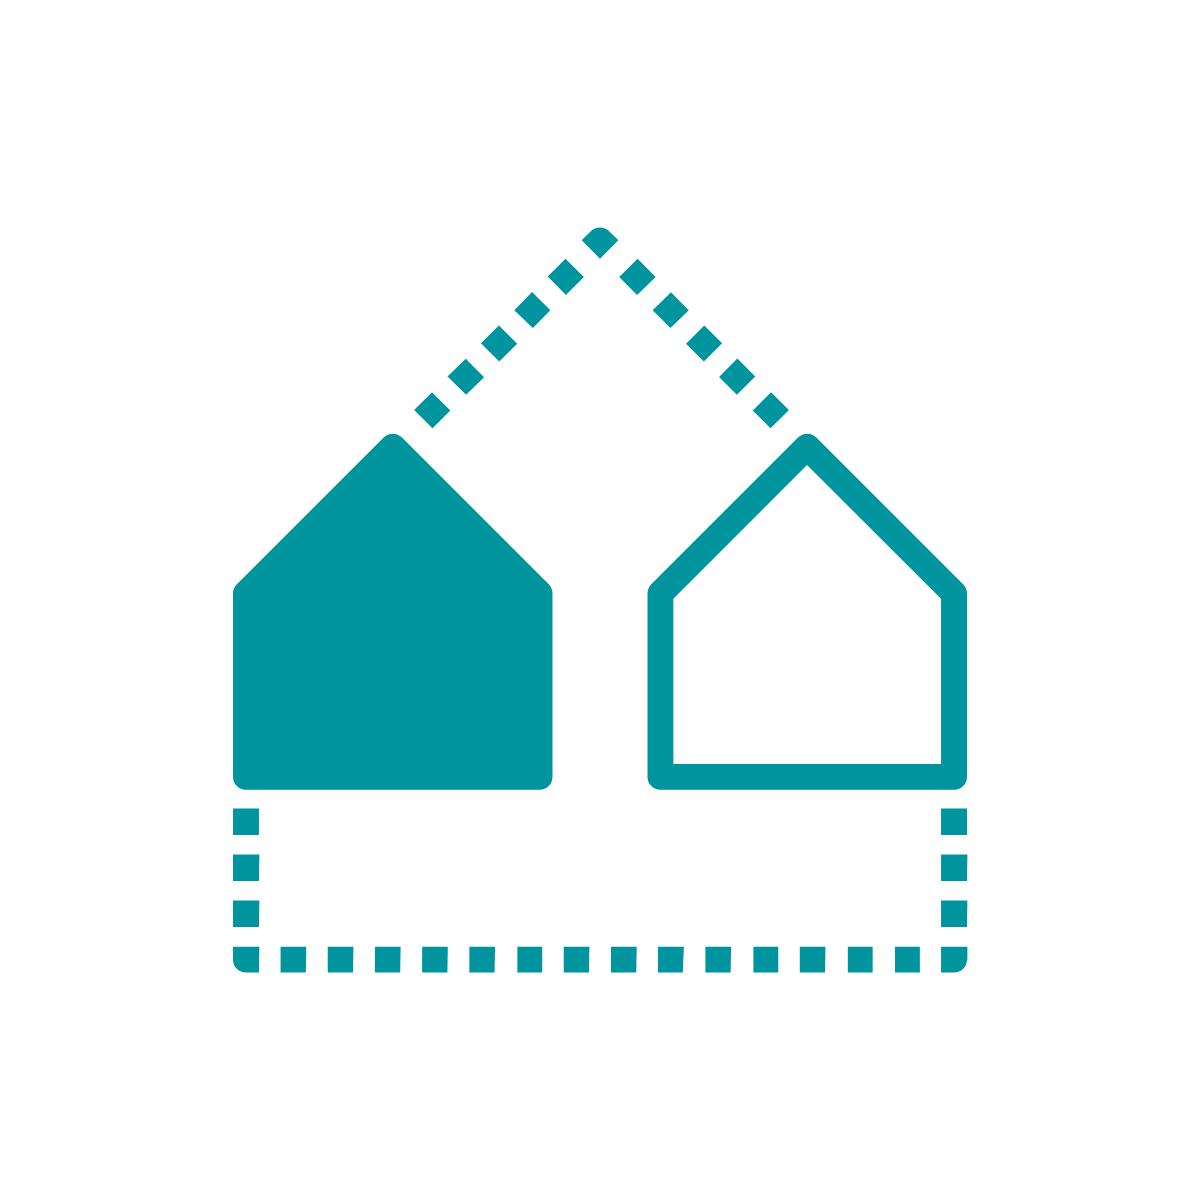 Icon of two houses forming a larger house